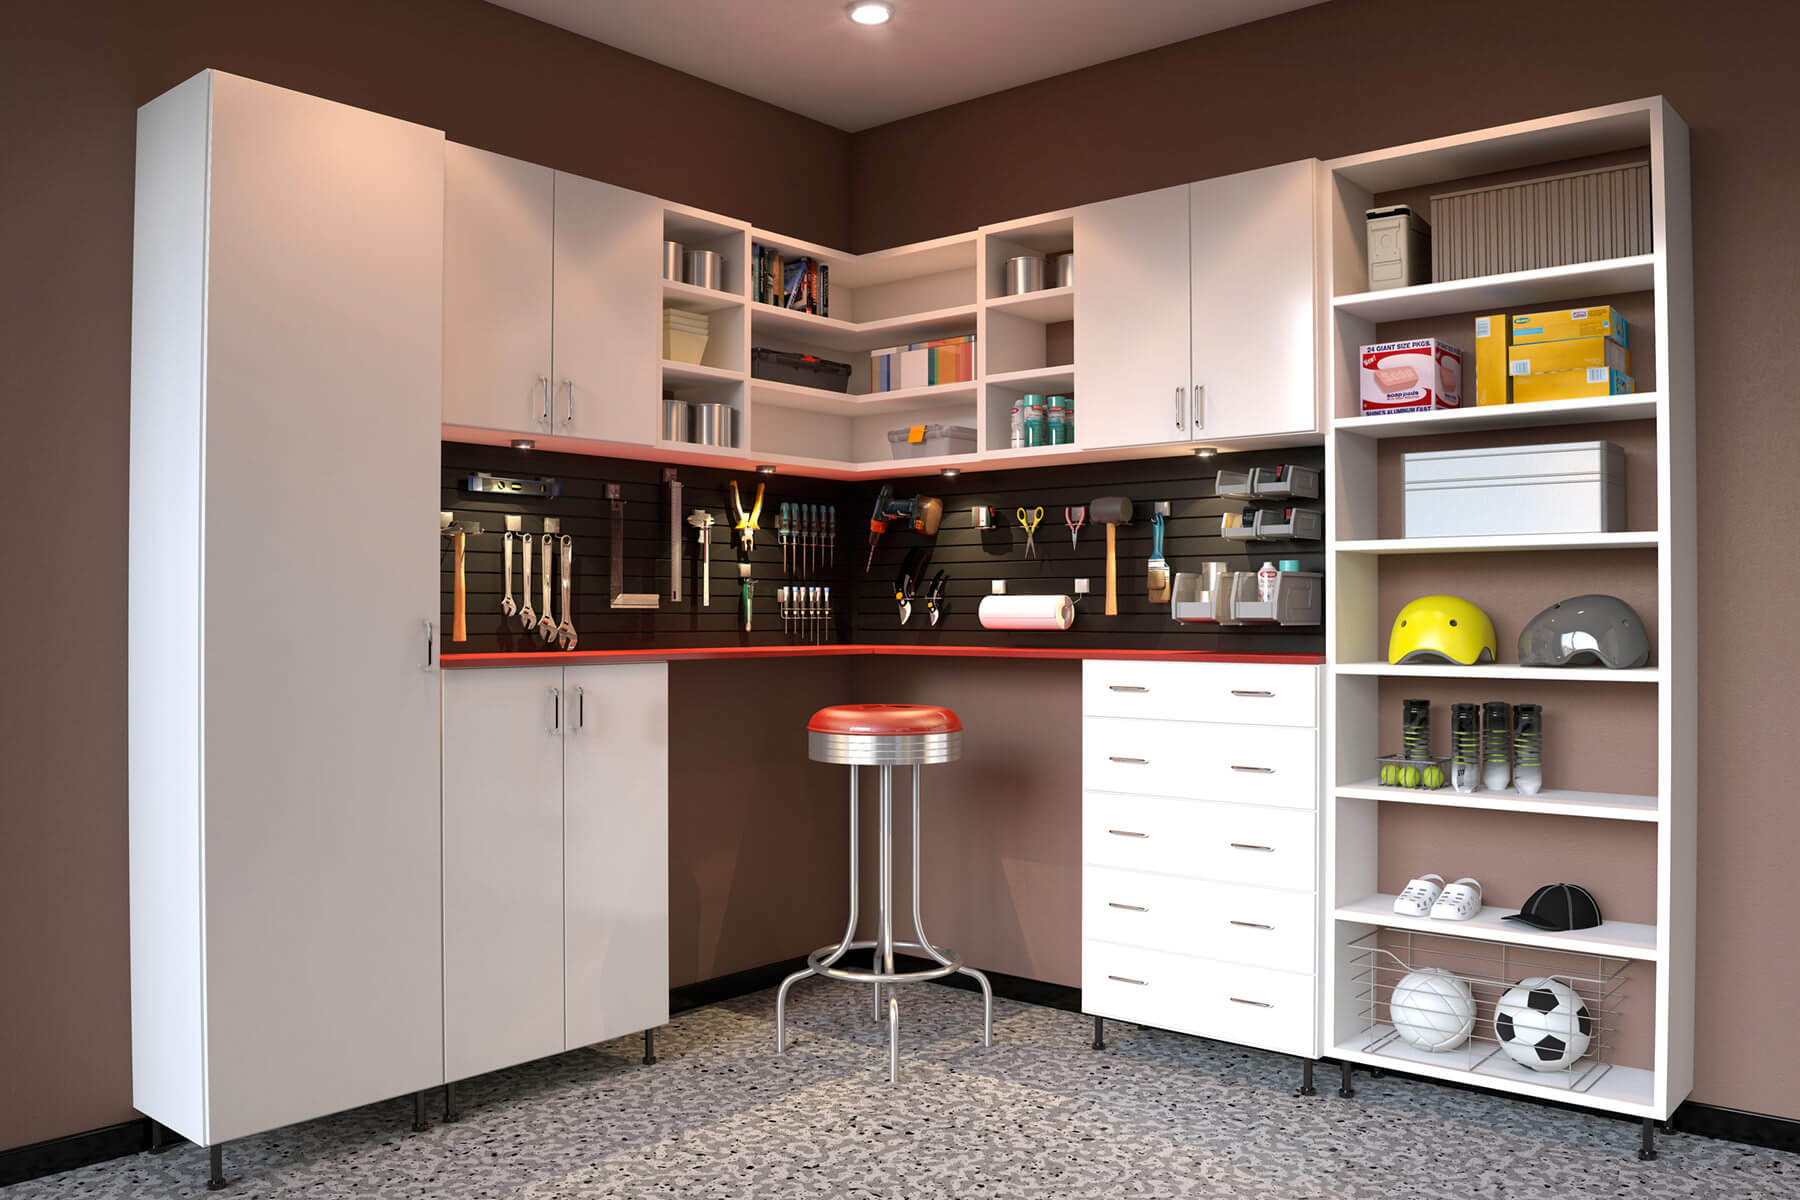 Garage space is maximized through the use of basic white tall melamine cabinets and a combination of open shelves. There's also a workbench in front of a workstation where tools are conveniently hung on an embedded wall rack.